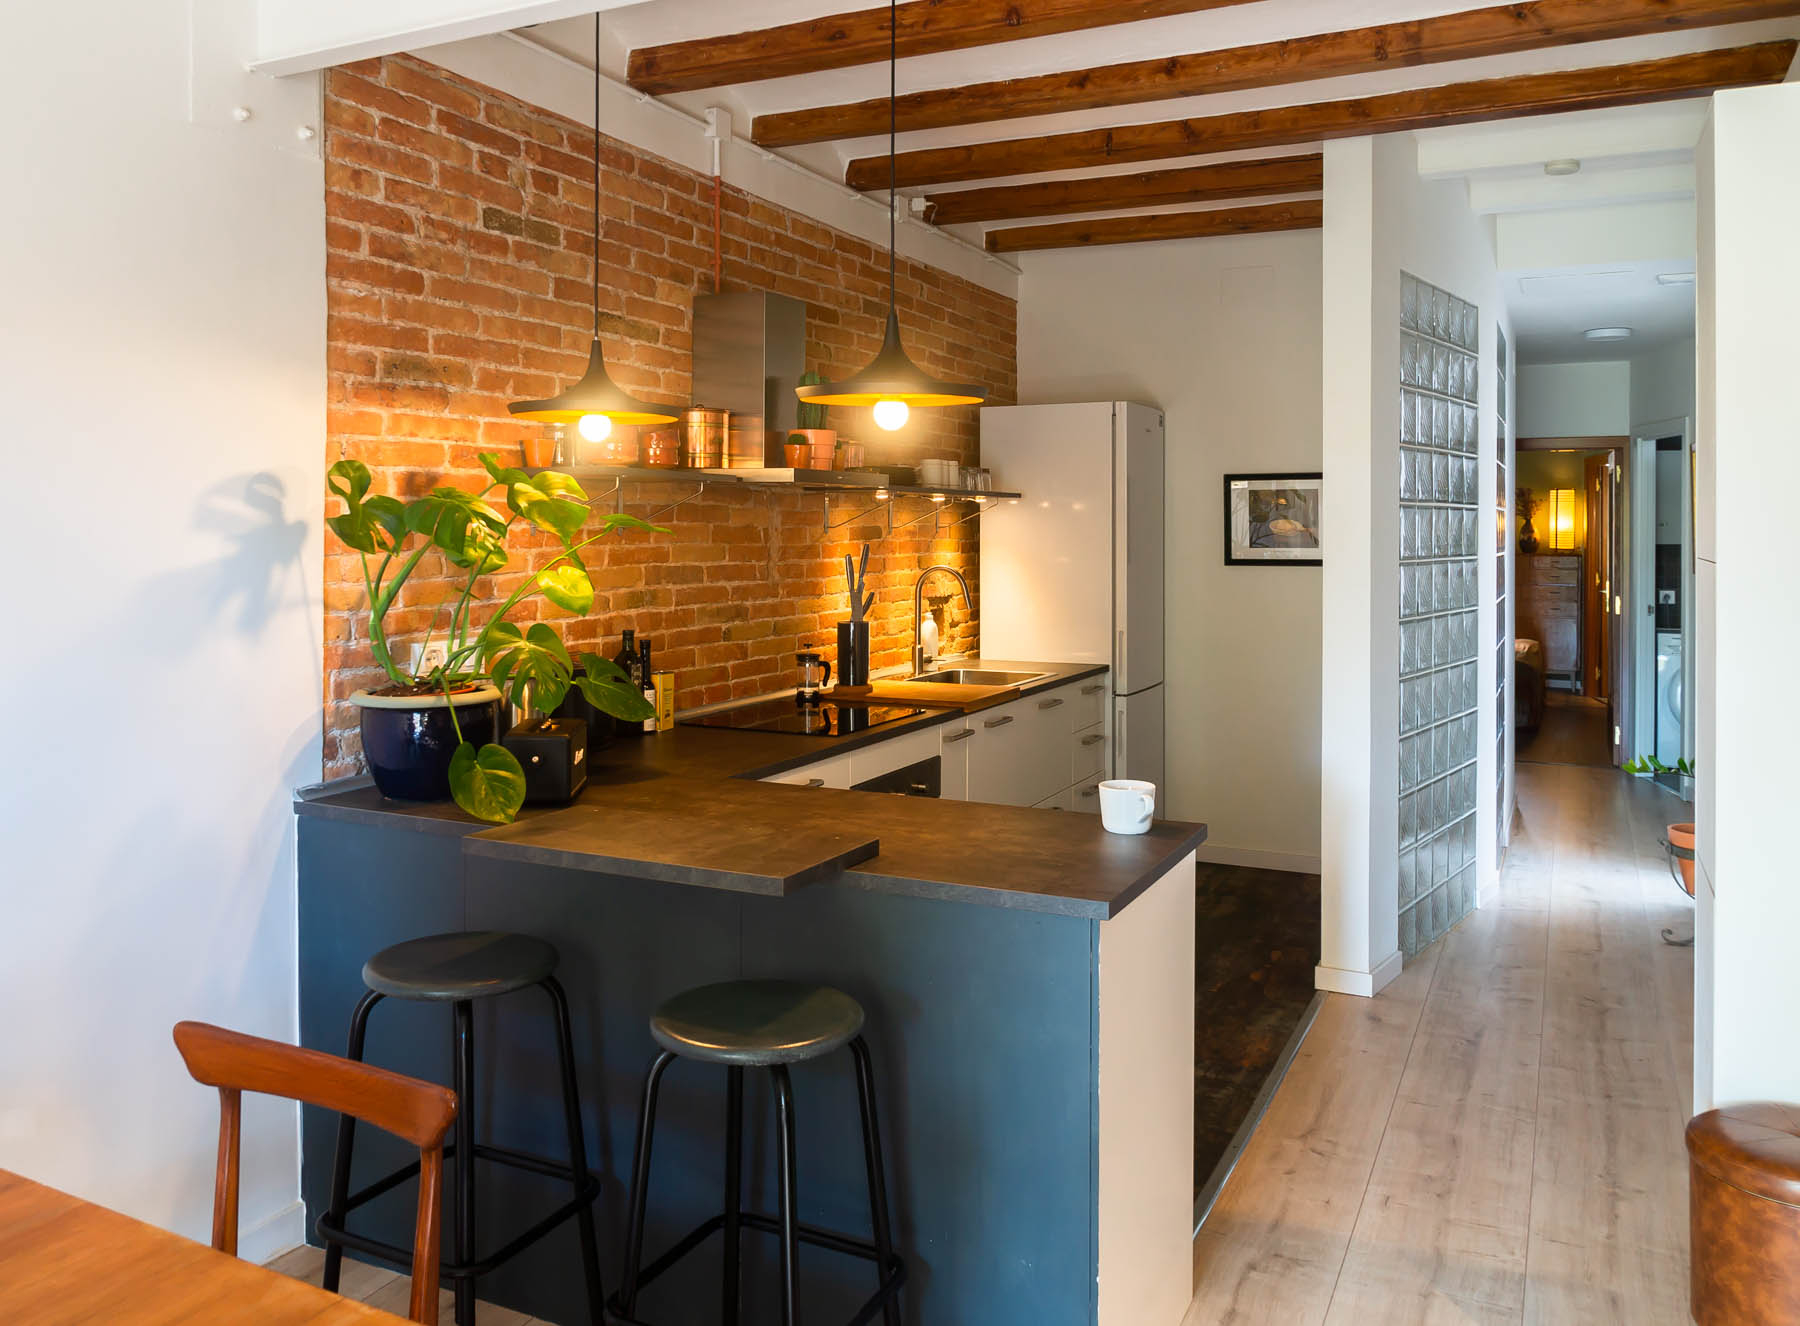 Barcelona home tour: New-York style open kitchen with beamed ceilings - traditional Catalan design element